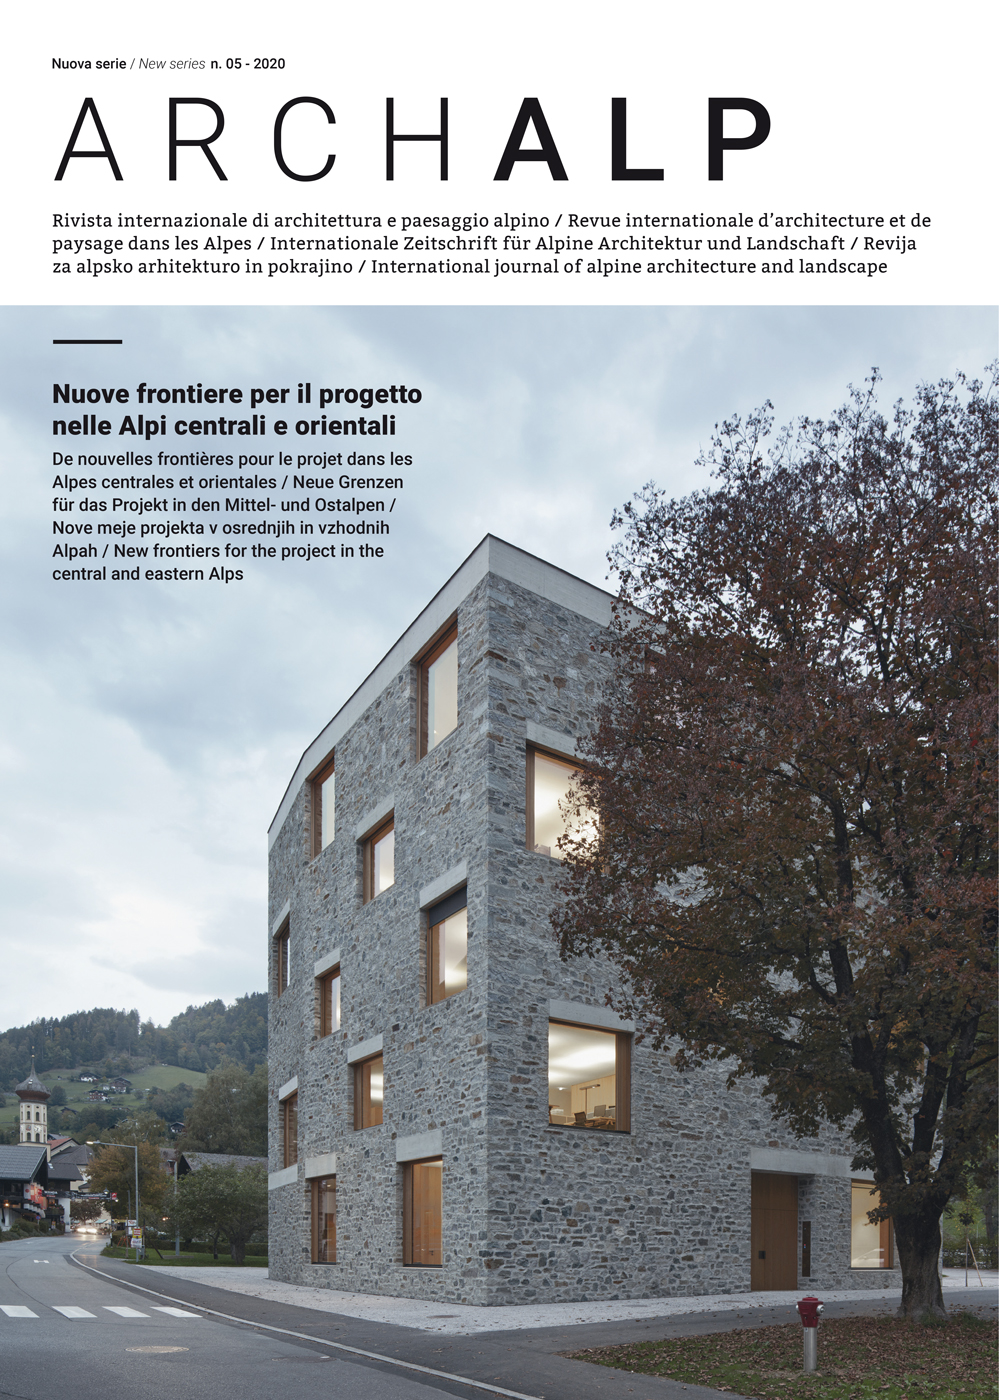 ArchAlp n. 05 dicembre 2020 - Bononia University Press